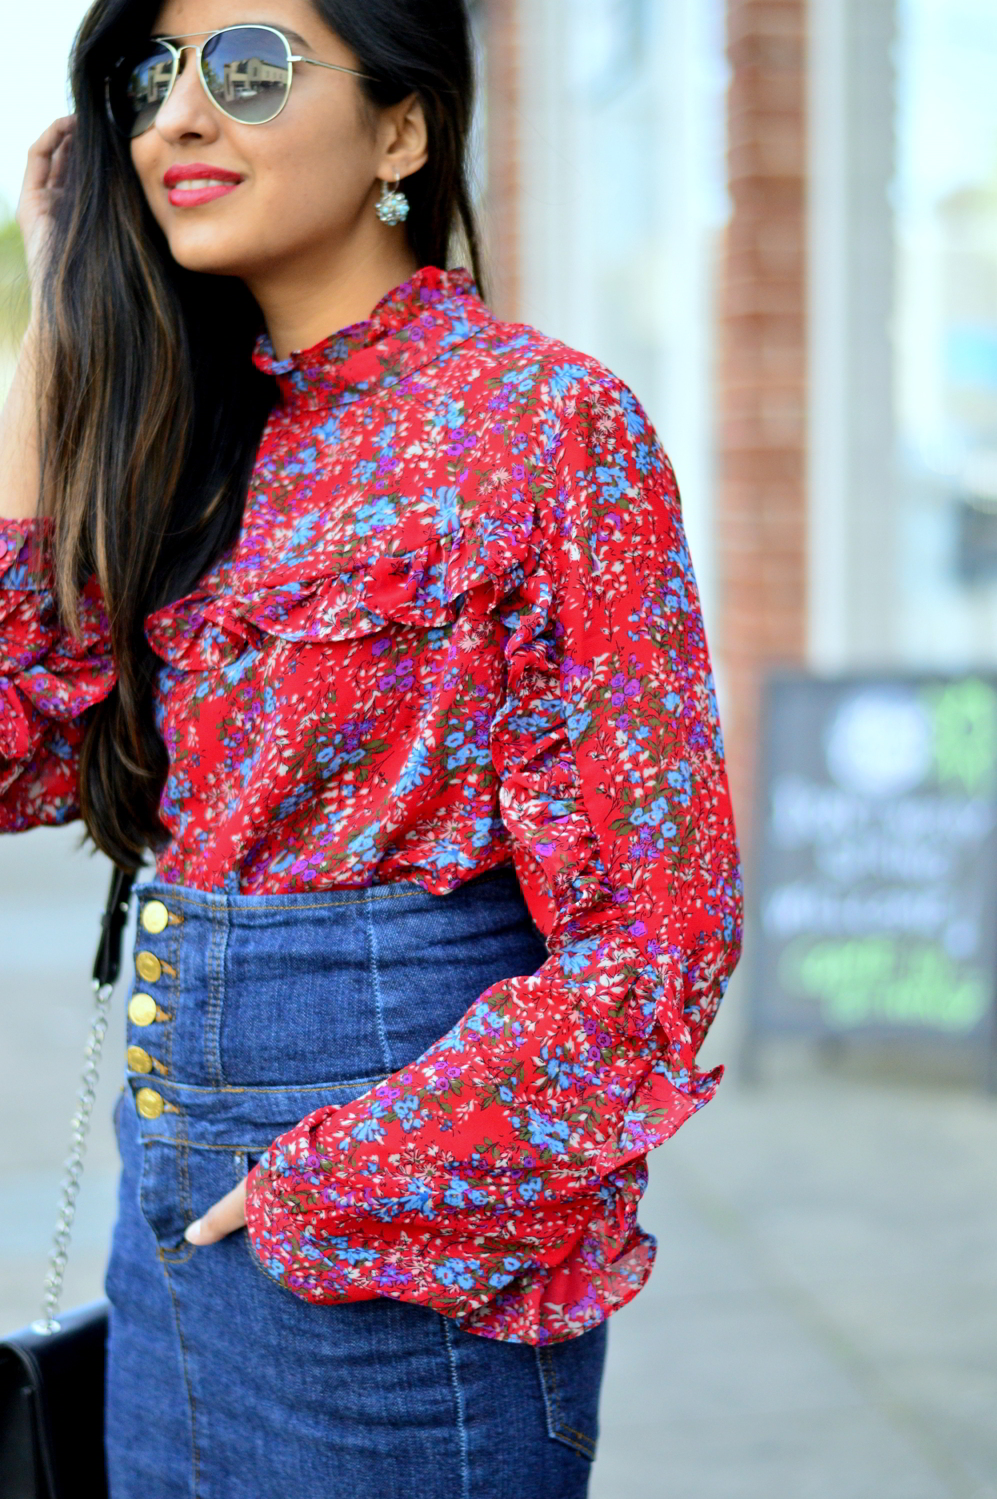 ruffles-floral-top-spring-style-high-waisted-denim-skirt-blogger-outfit 4